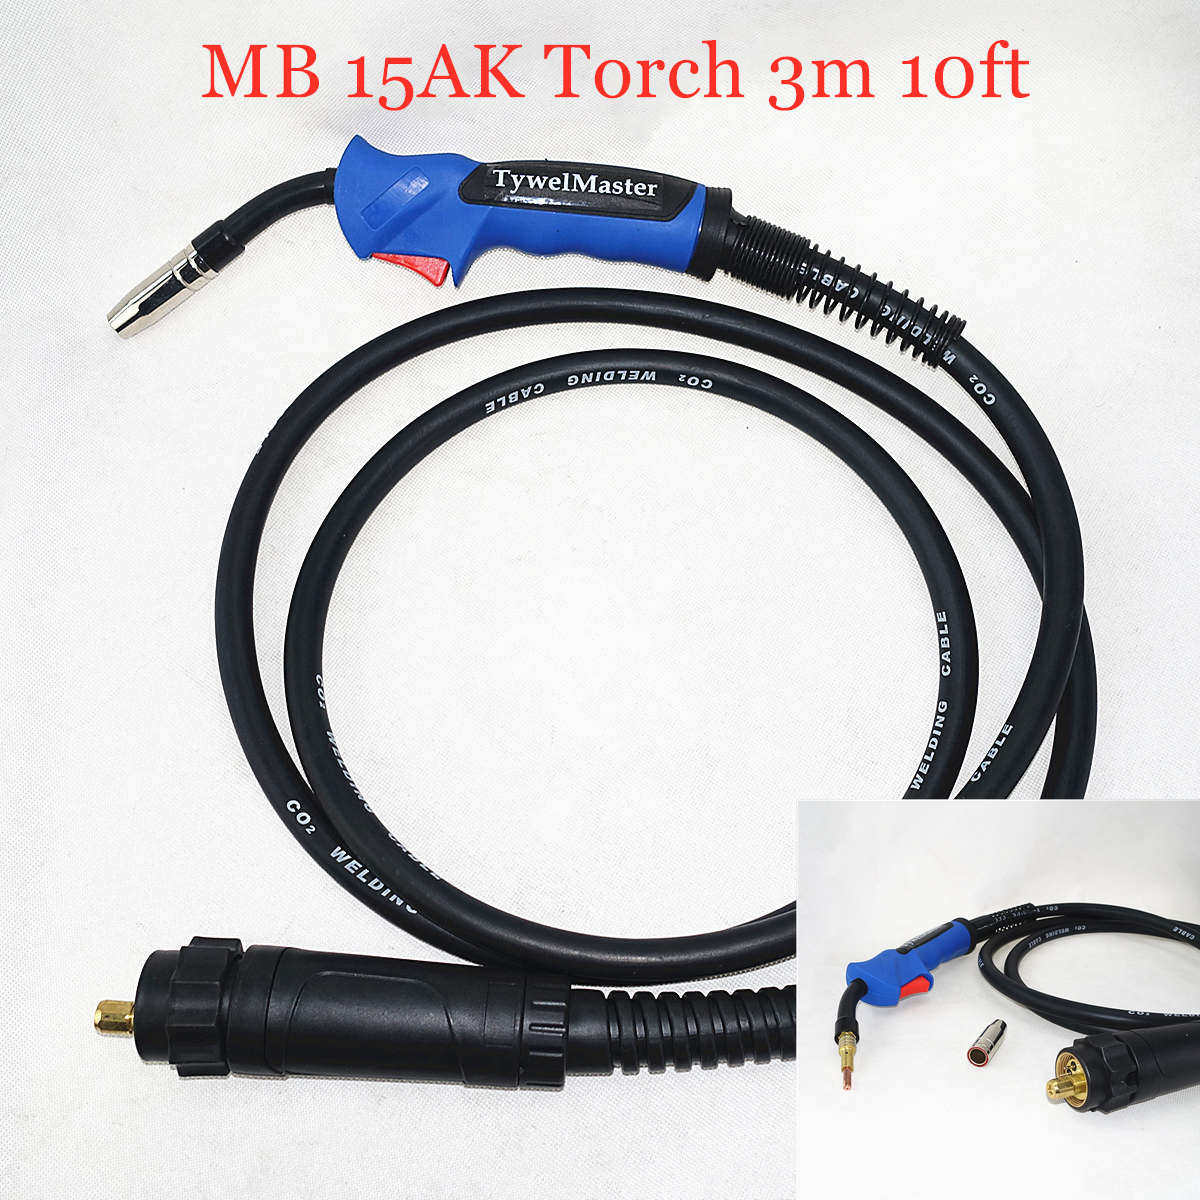 180A 15AK MIG Torch MAG Welding Gun 3M Air-cooled Euro Connector For MIG MAG Welding Machine